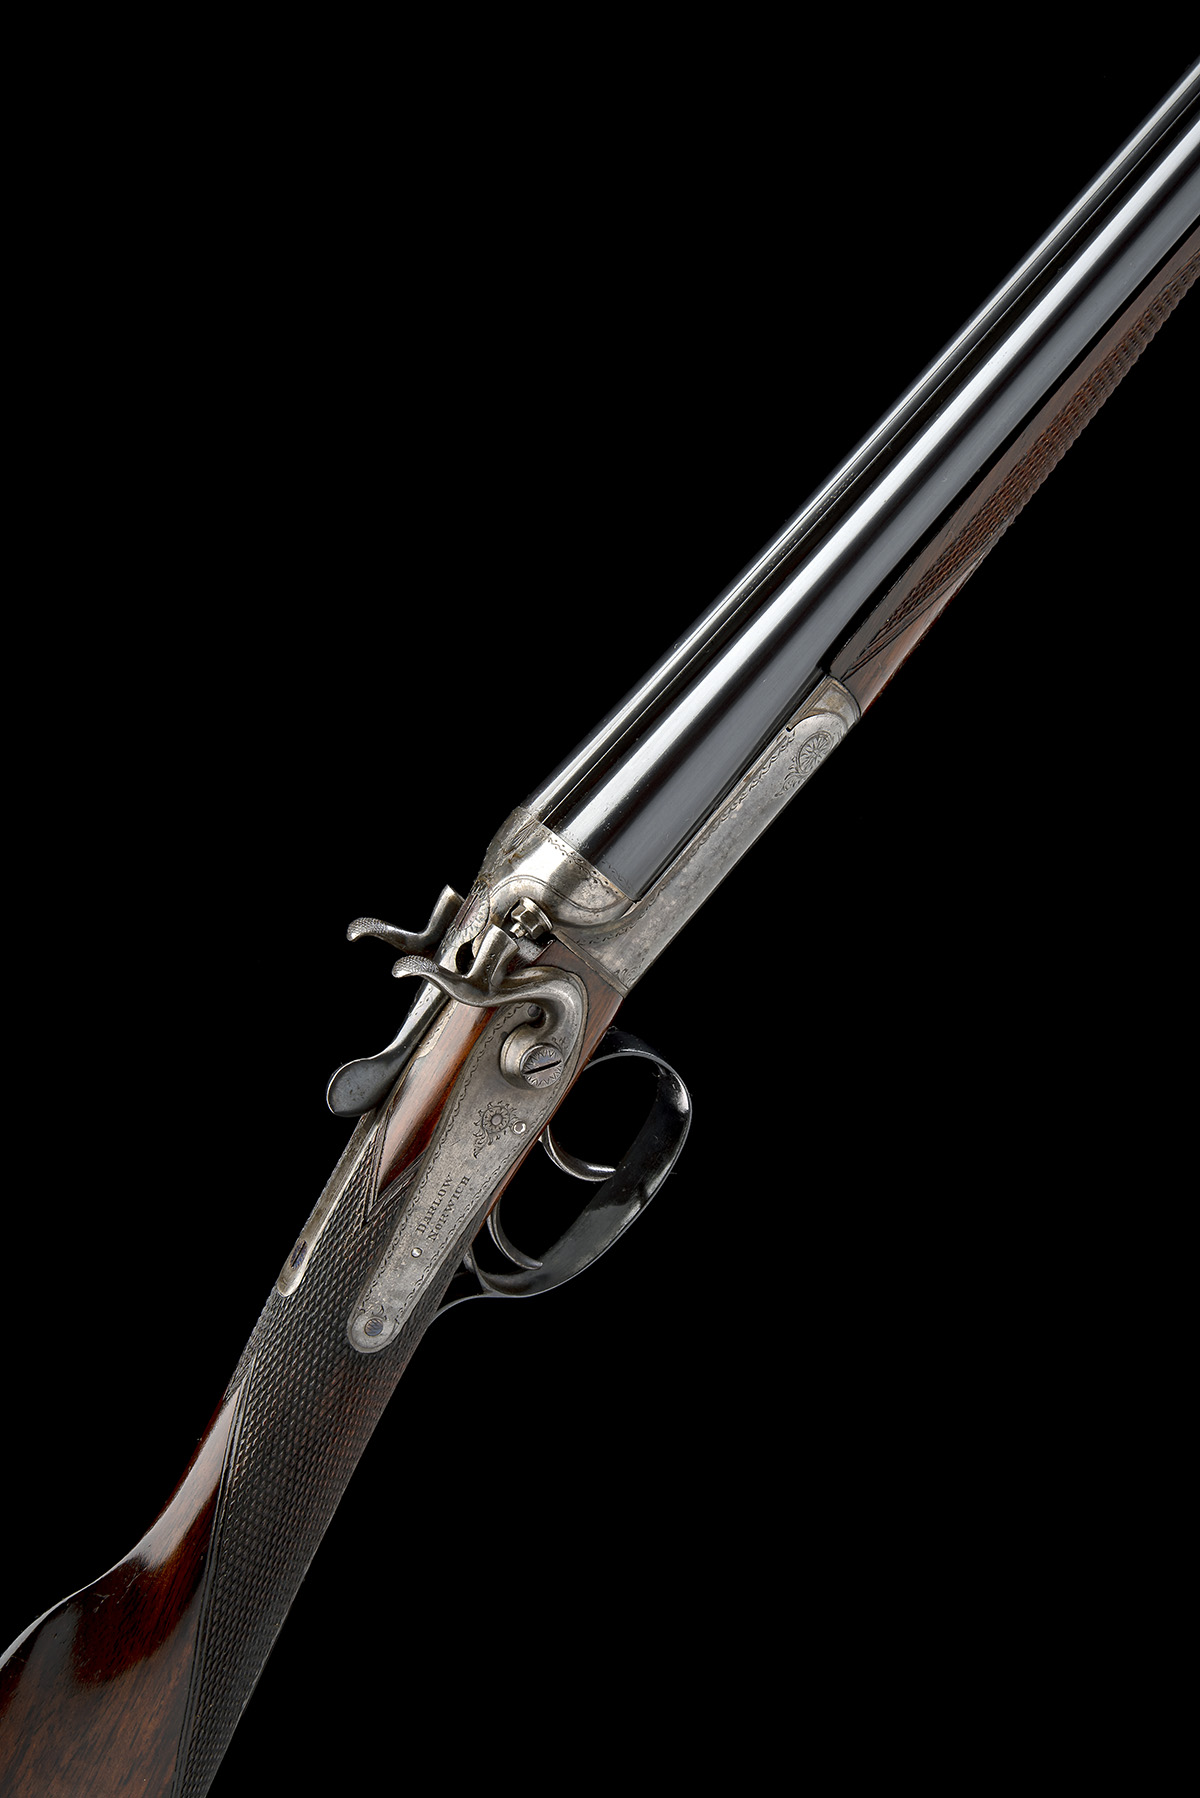 DARLOW (NORWICH) A .410 (2 1/2IN.) DOUBLE-BARRELLED TOPLEVER HAMMERGUN, serial no. H21351, for 1934,